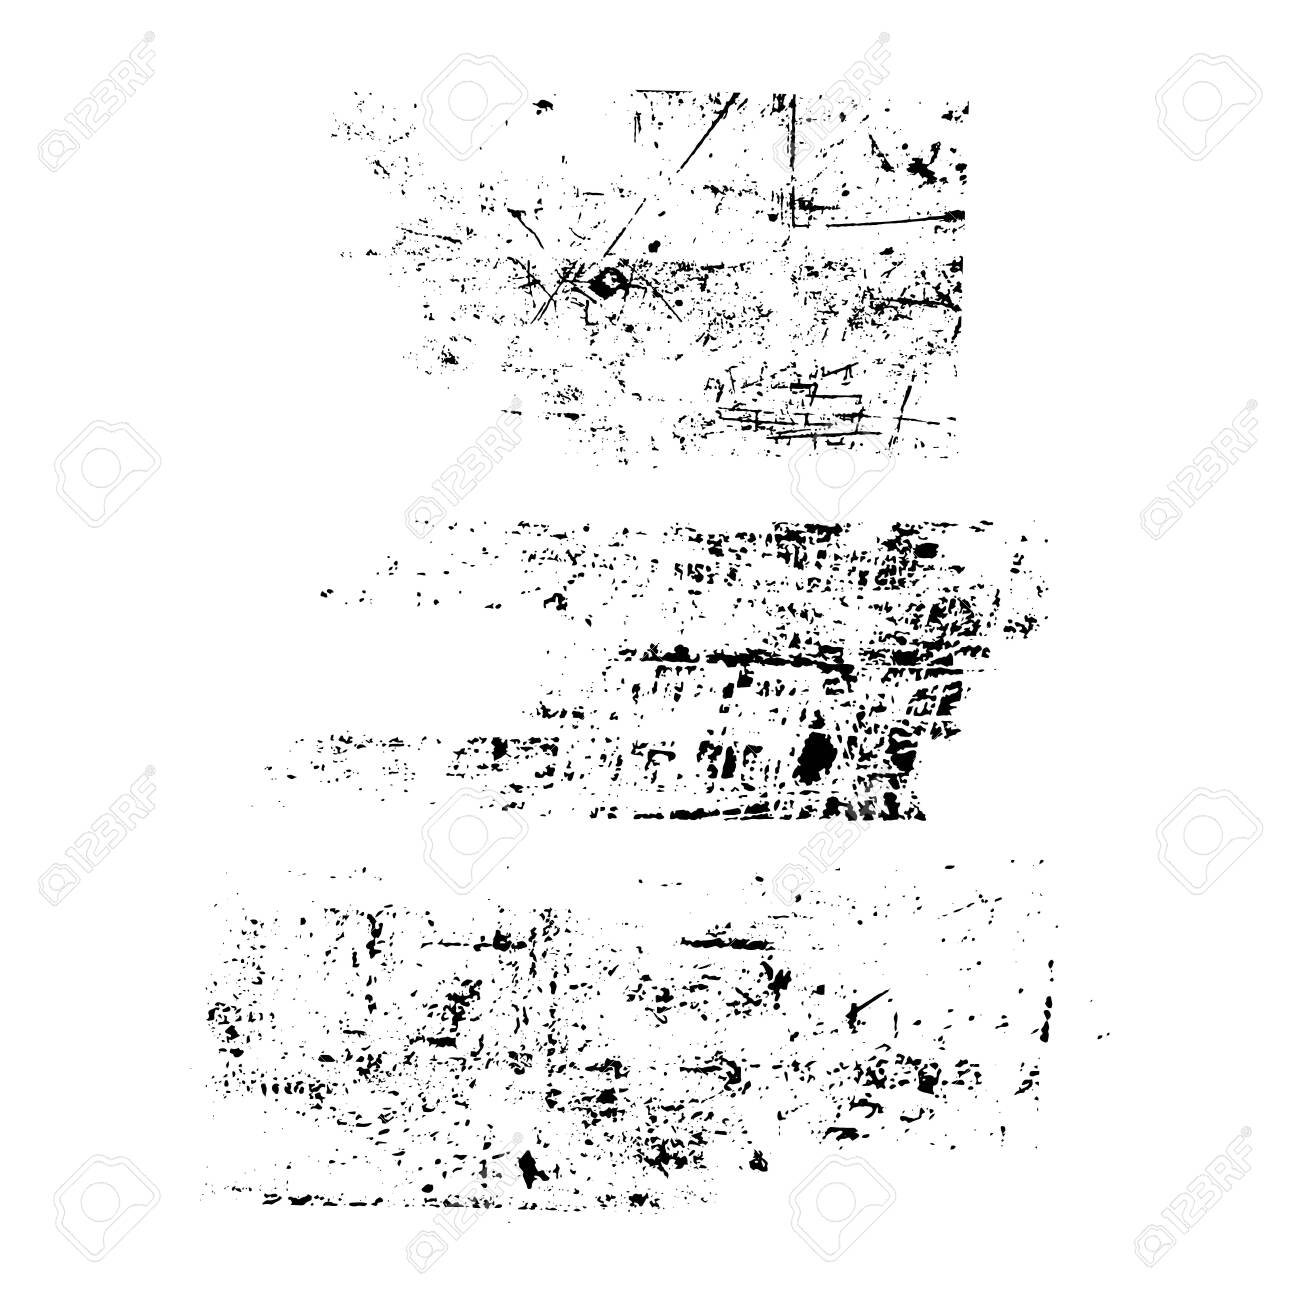 Grunge Urban Background.Texture Vector.Dust Overlay Distress Grain, Simply Place illustration over any Object to Create grungy Effect .abstract, splattered, dirty, poster for your design. - 152970574